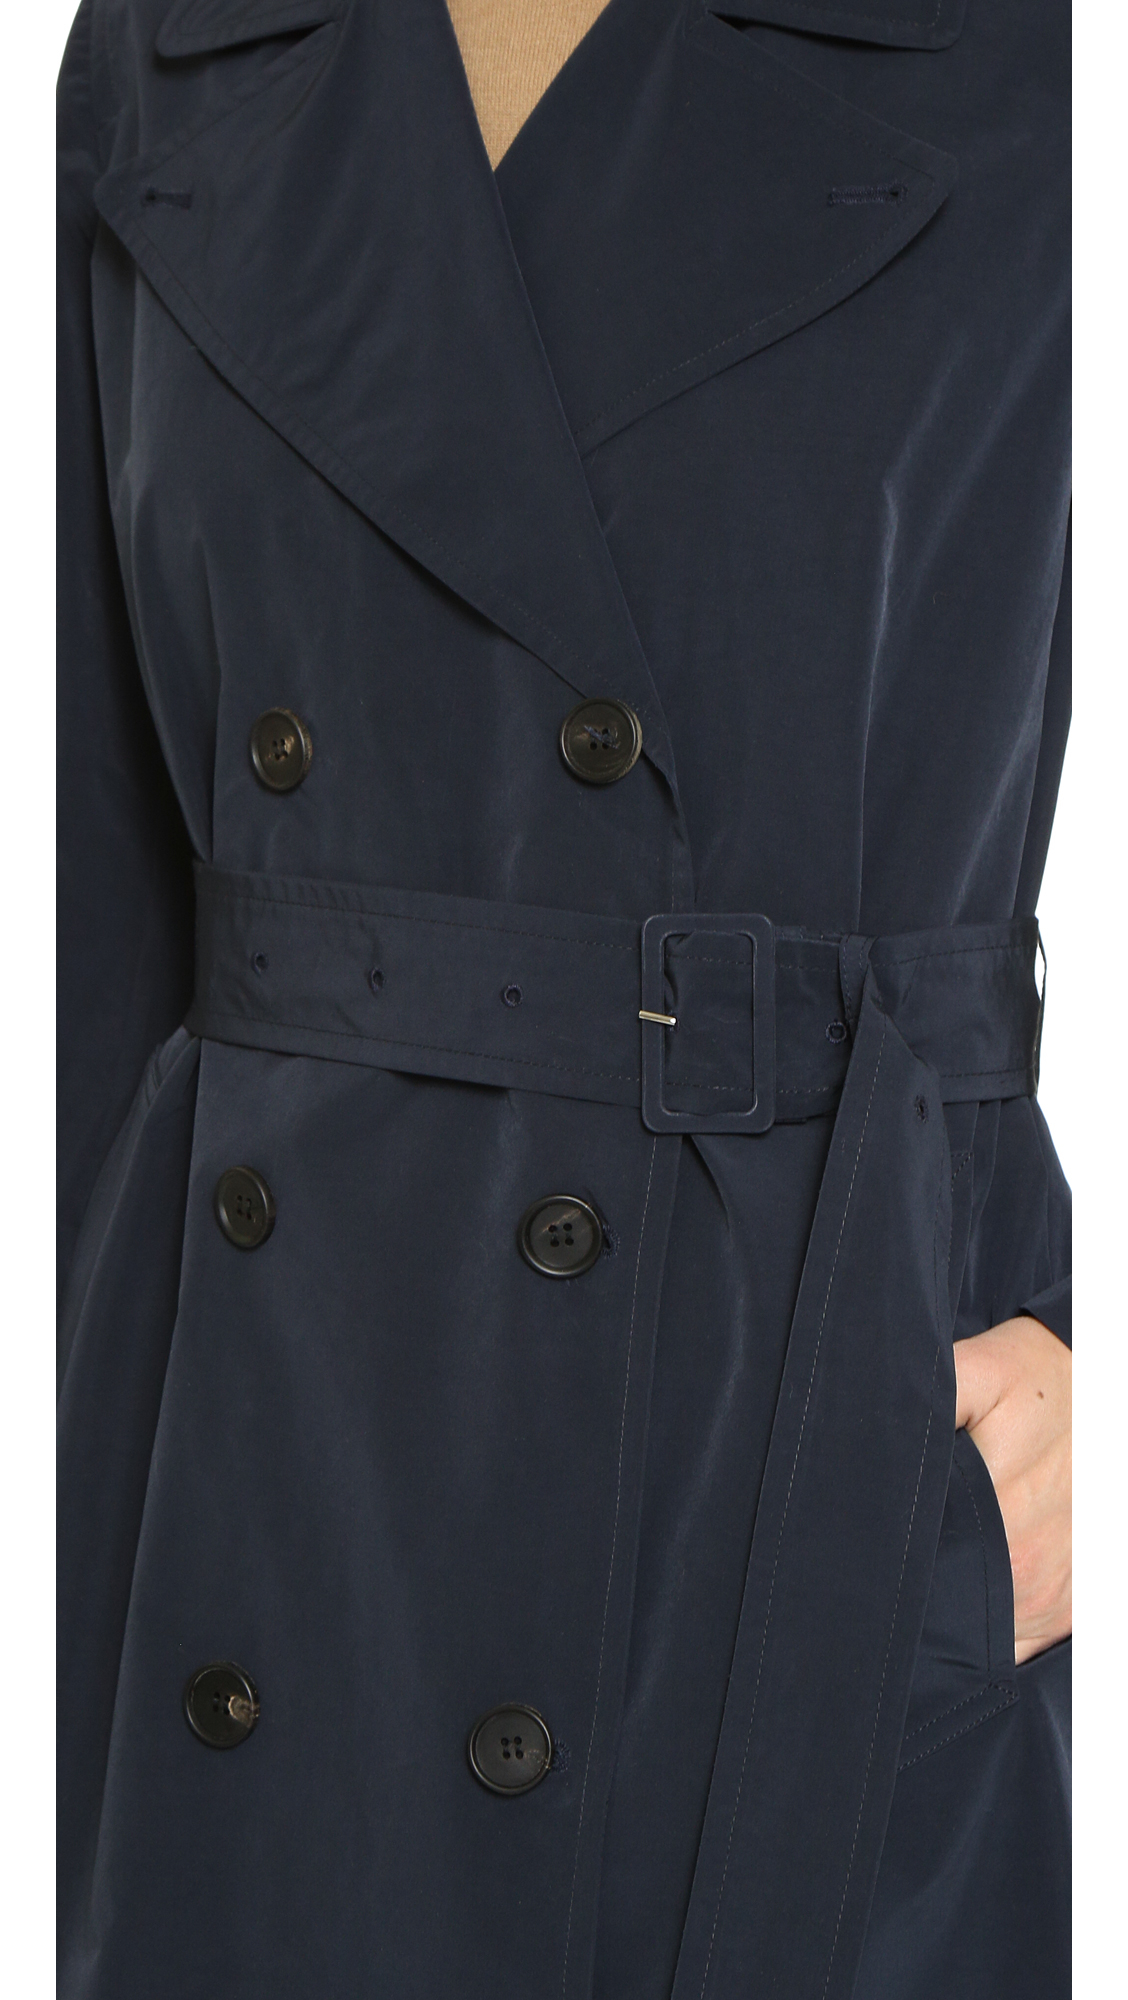 results for navy blue trench coat Save navy blue trench coat to get email alerts and updates on your eBay Feed. Unfollow navy blue trench coat to stop getting updates on your eBay Feed.